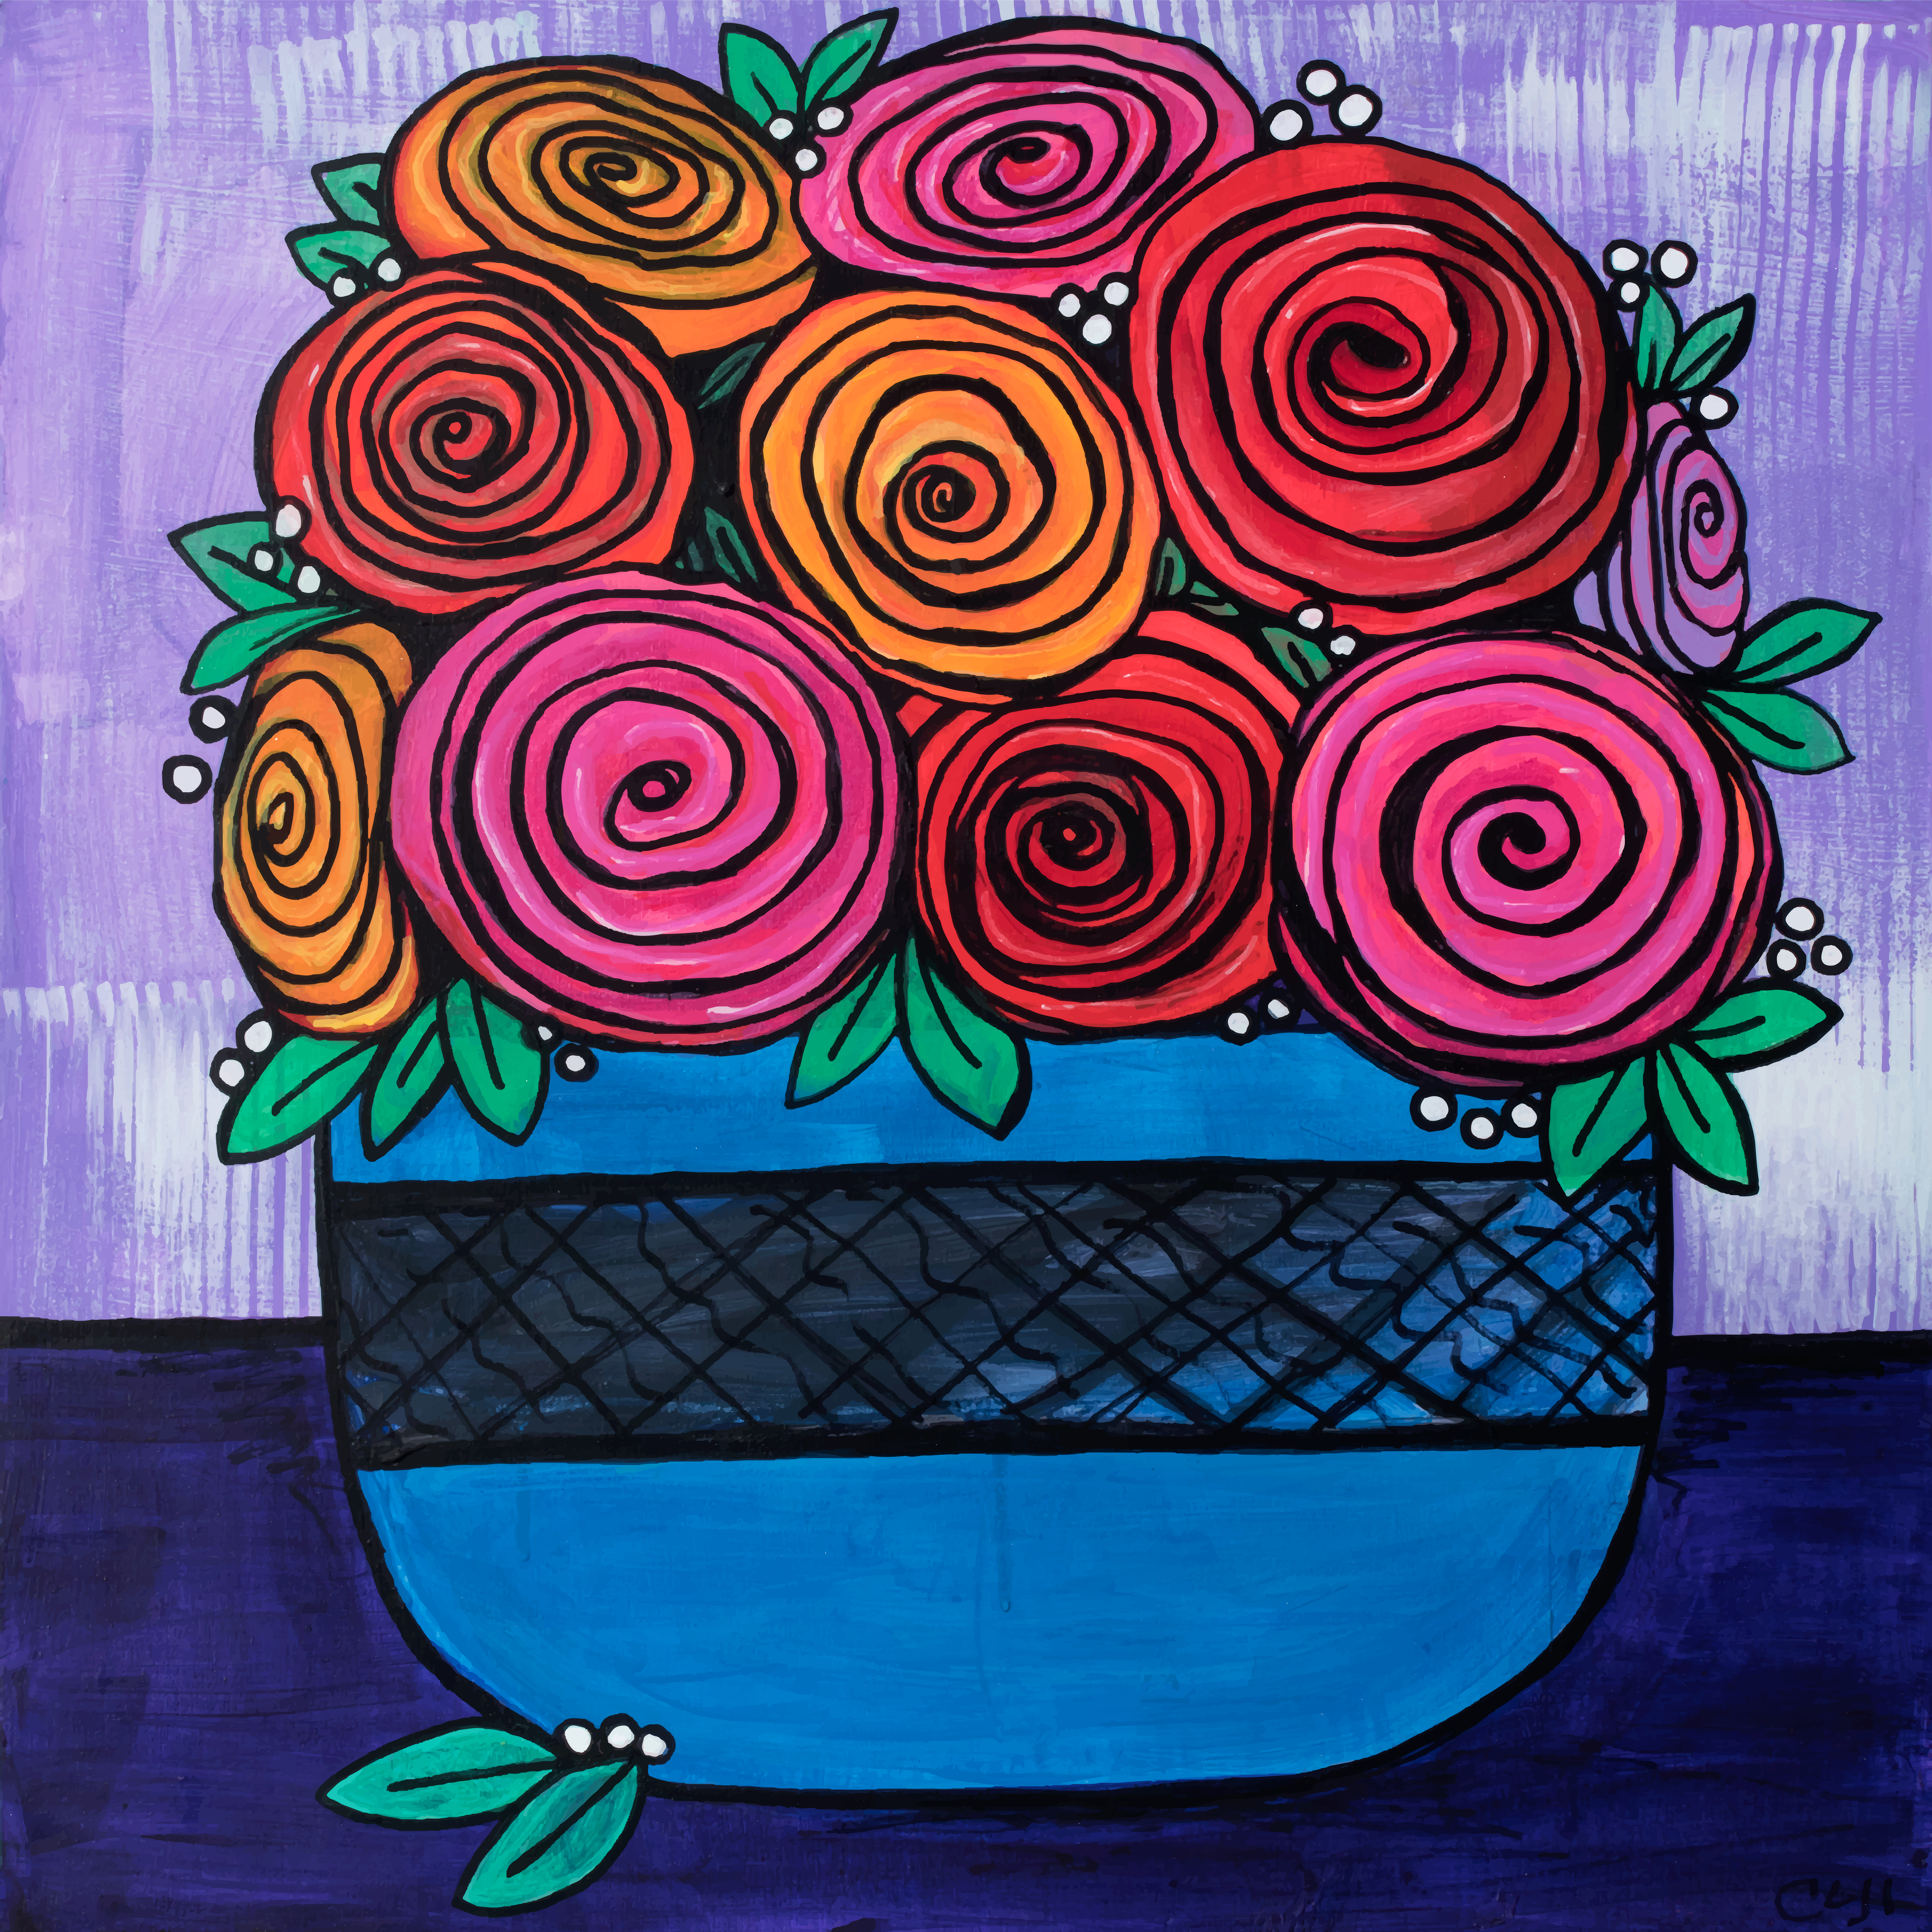 Bowls of Roses by Claudine Intner